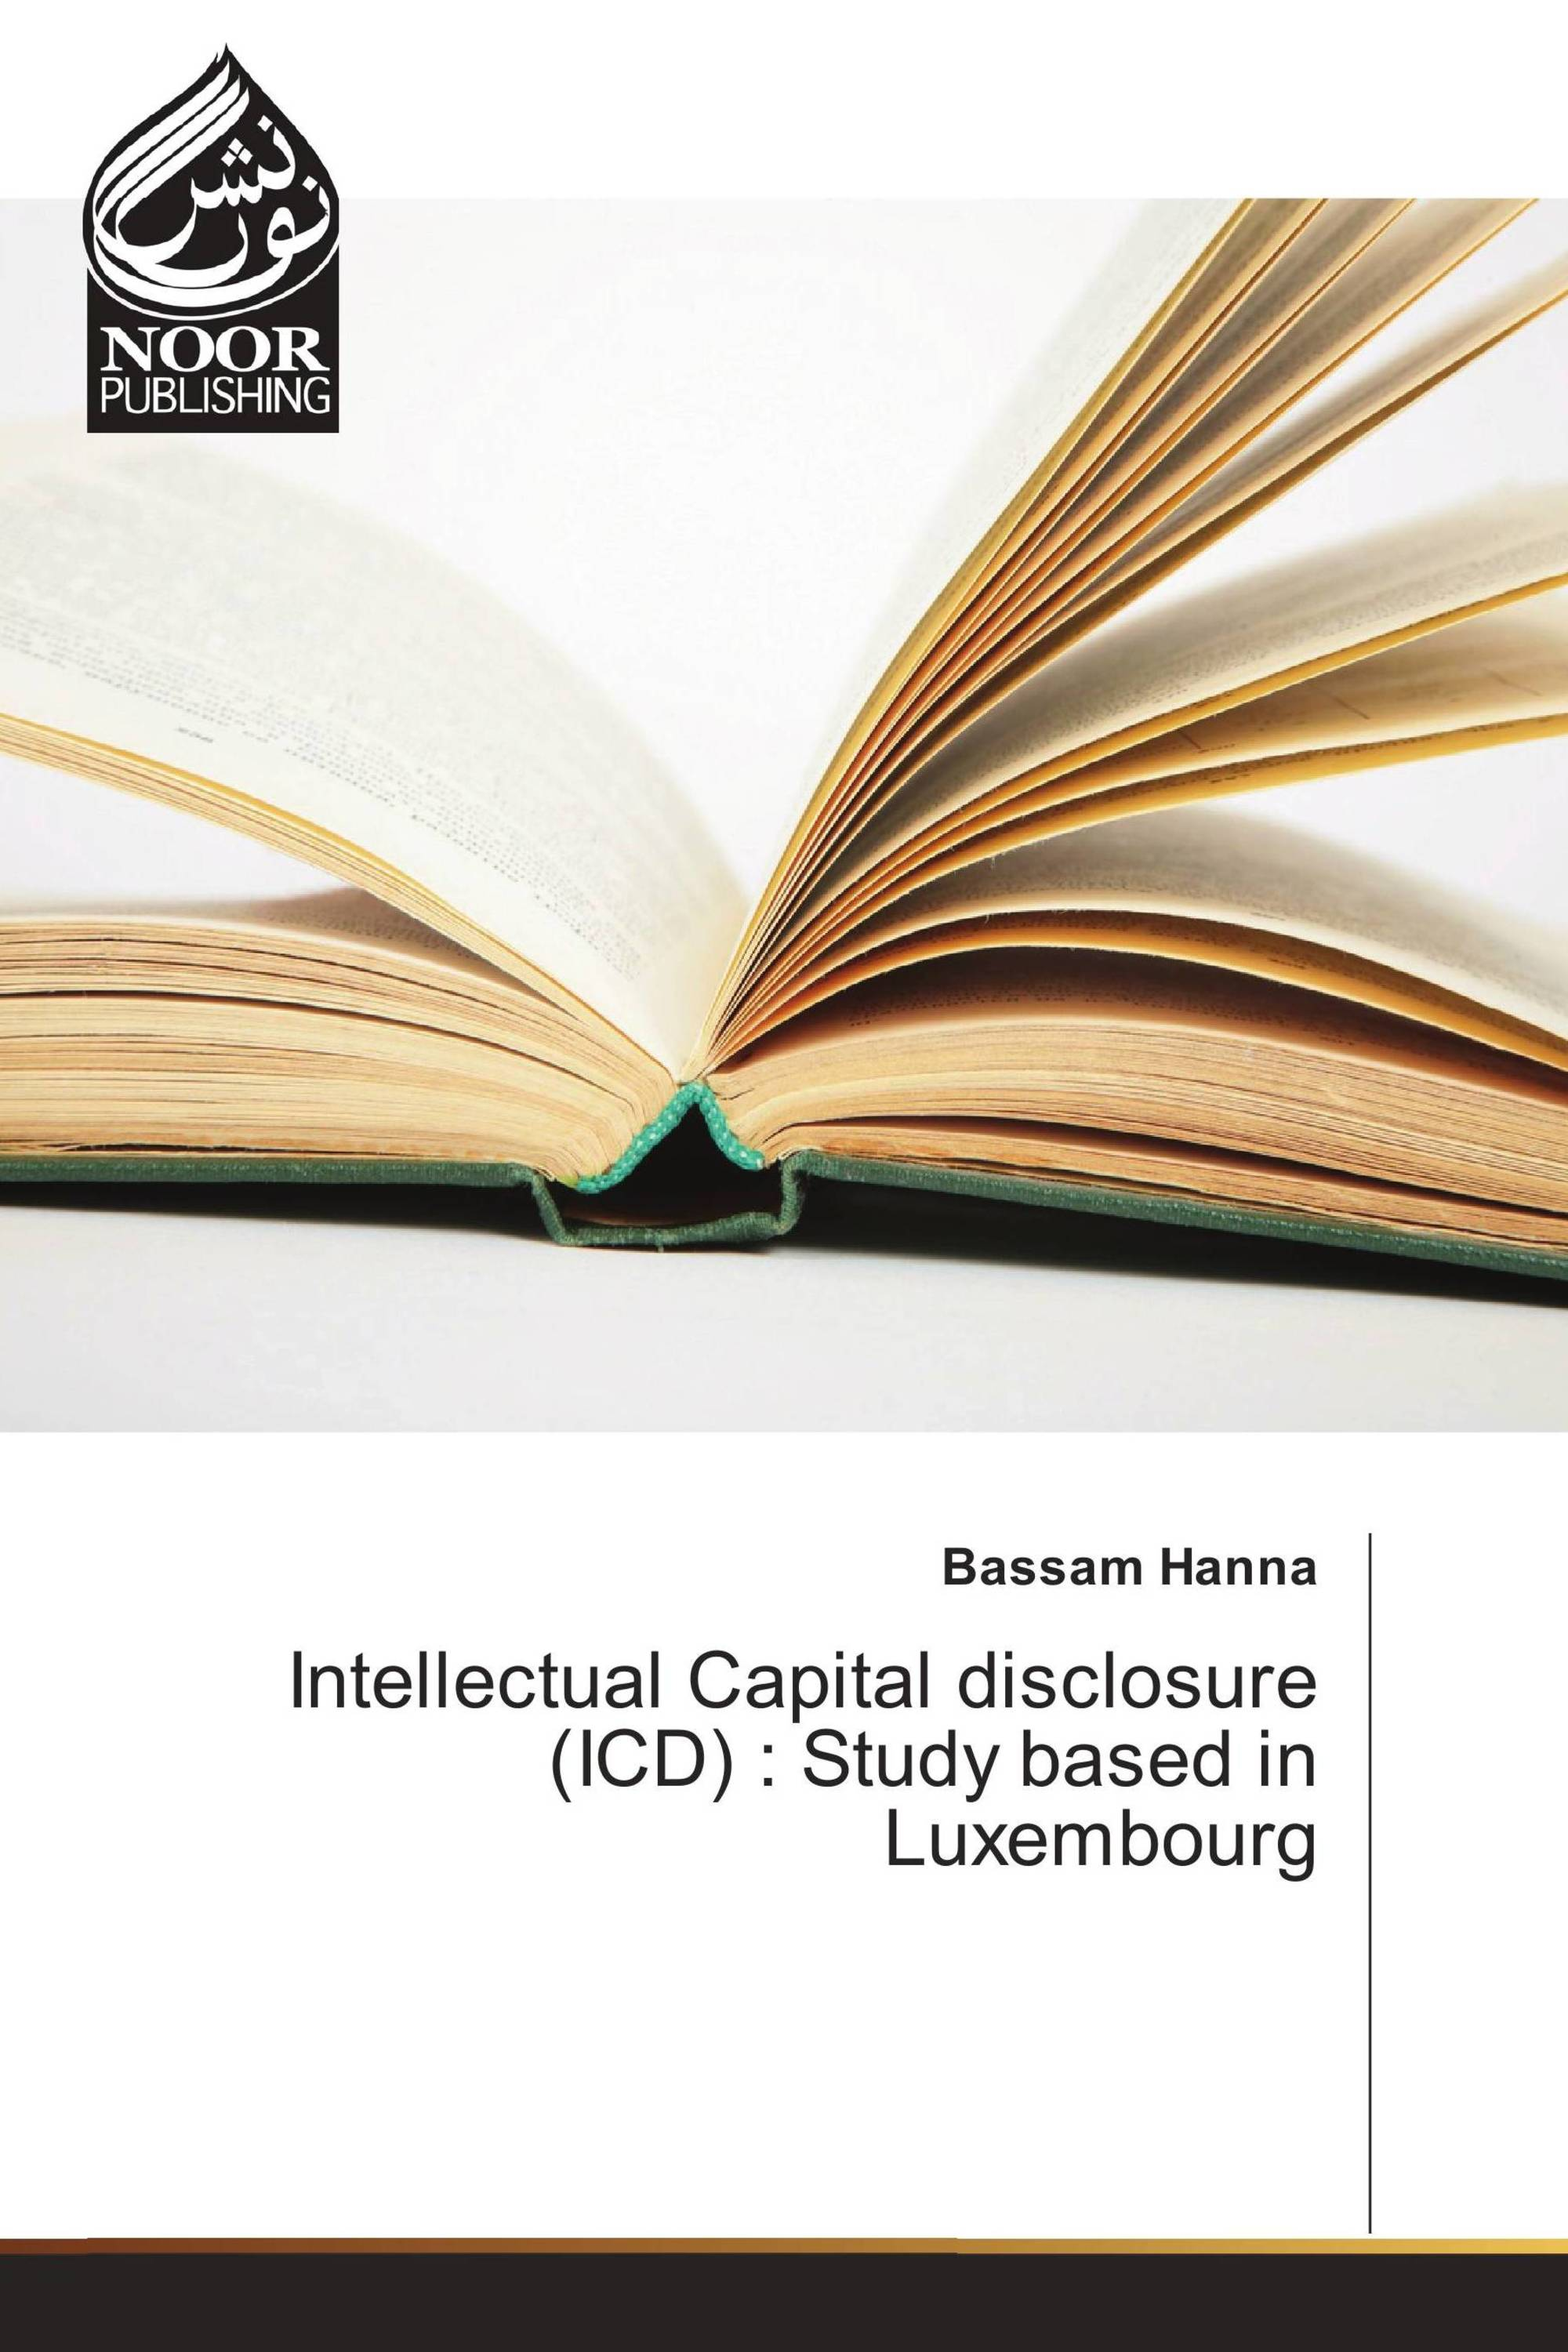 Intellectual Capital disclosure (ICD) : Study based in Luxembourg